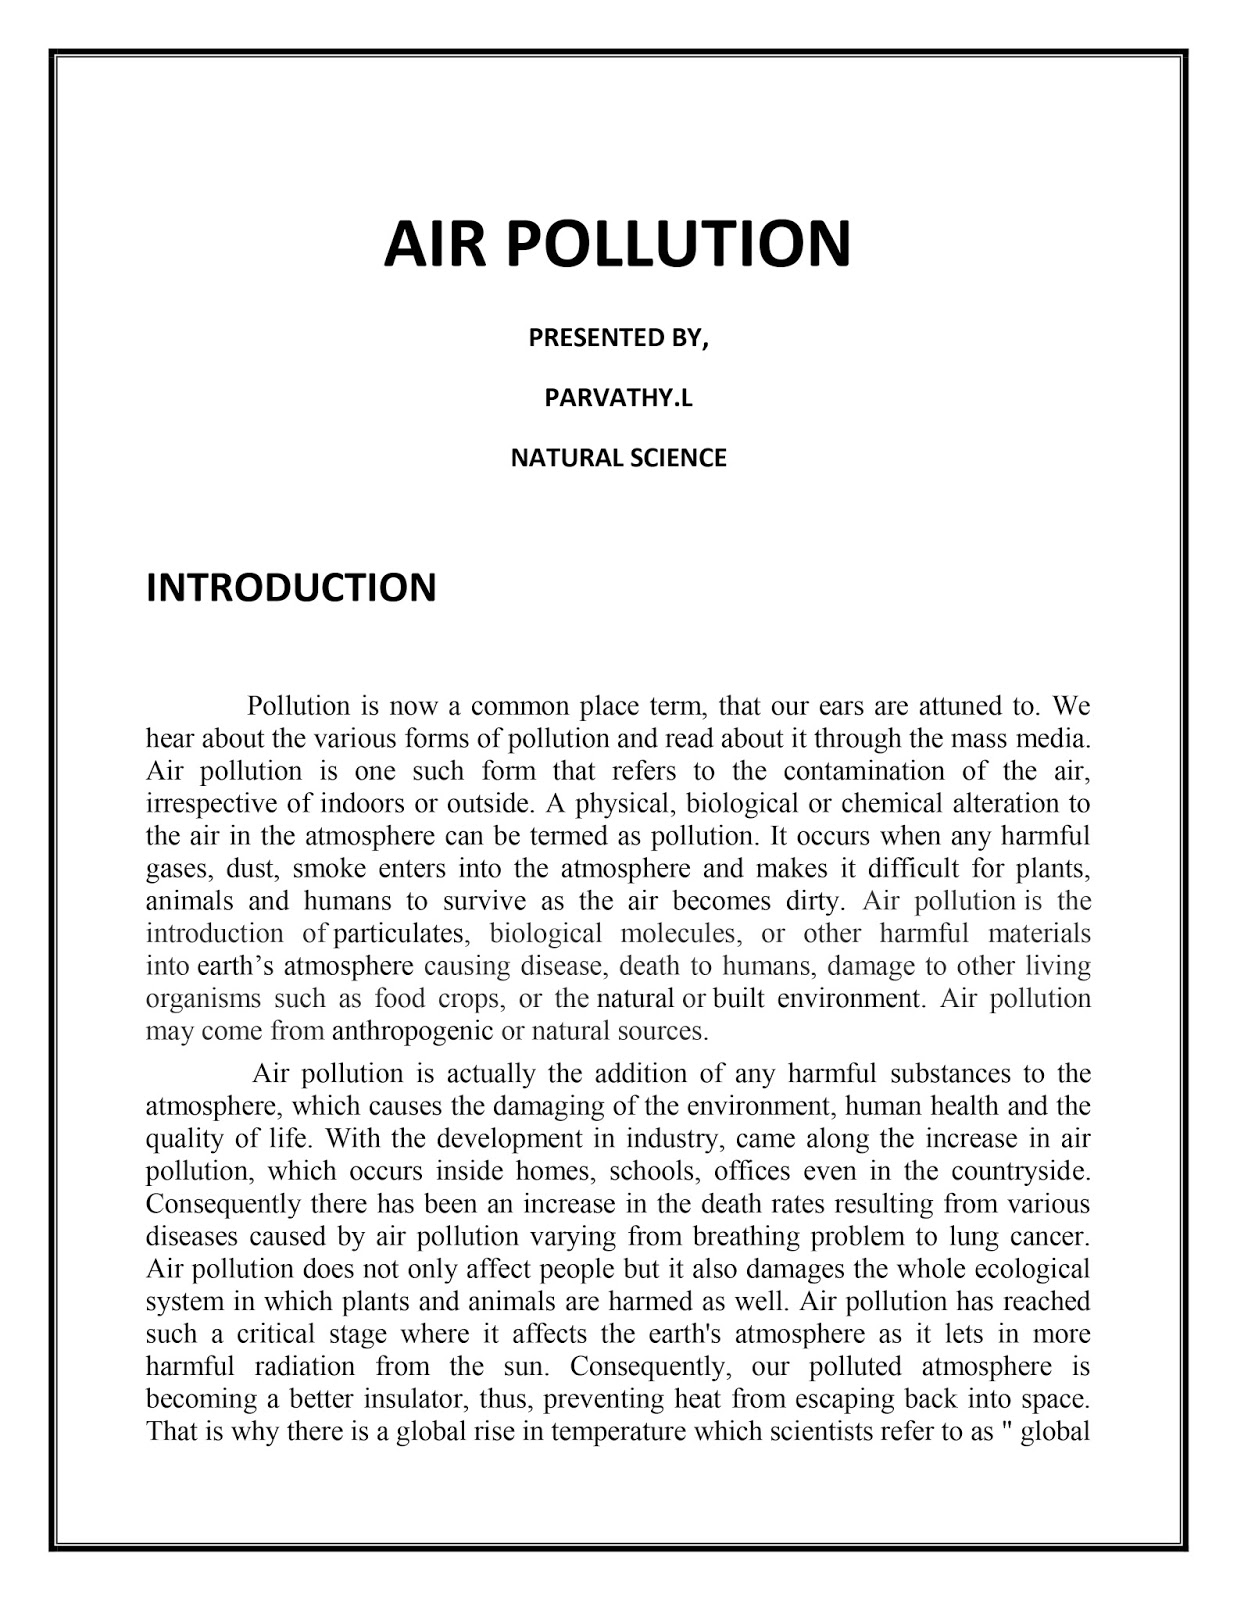 001 Airpollutiononlineassignment Essay Example Remarkable Pollution Thesis Statement Air In English 1000 Words Full